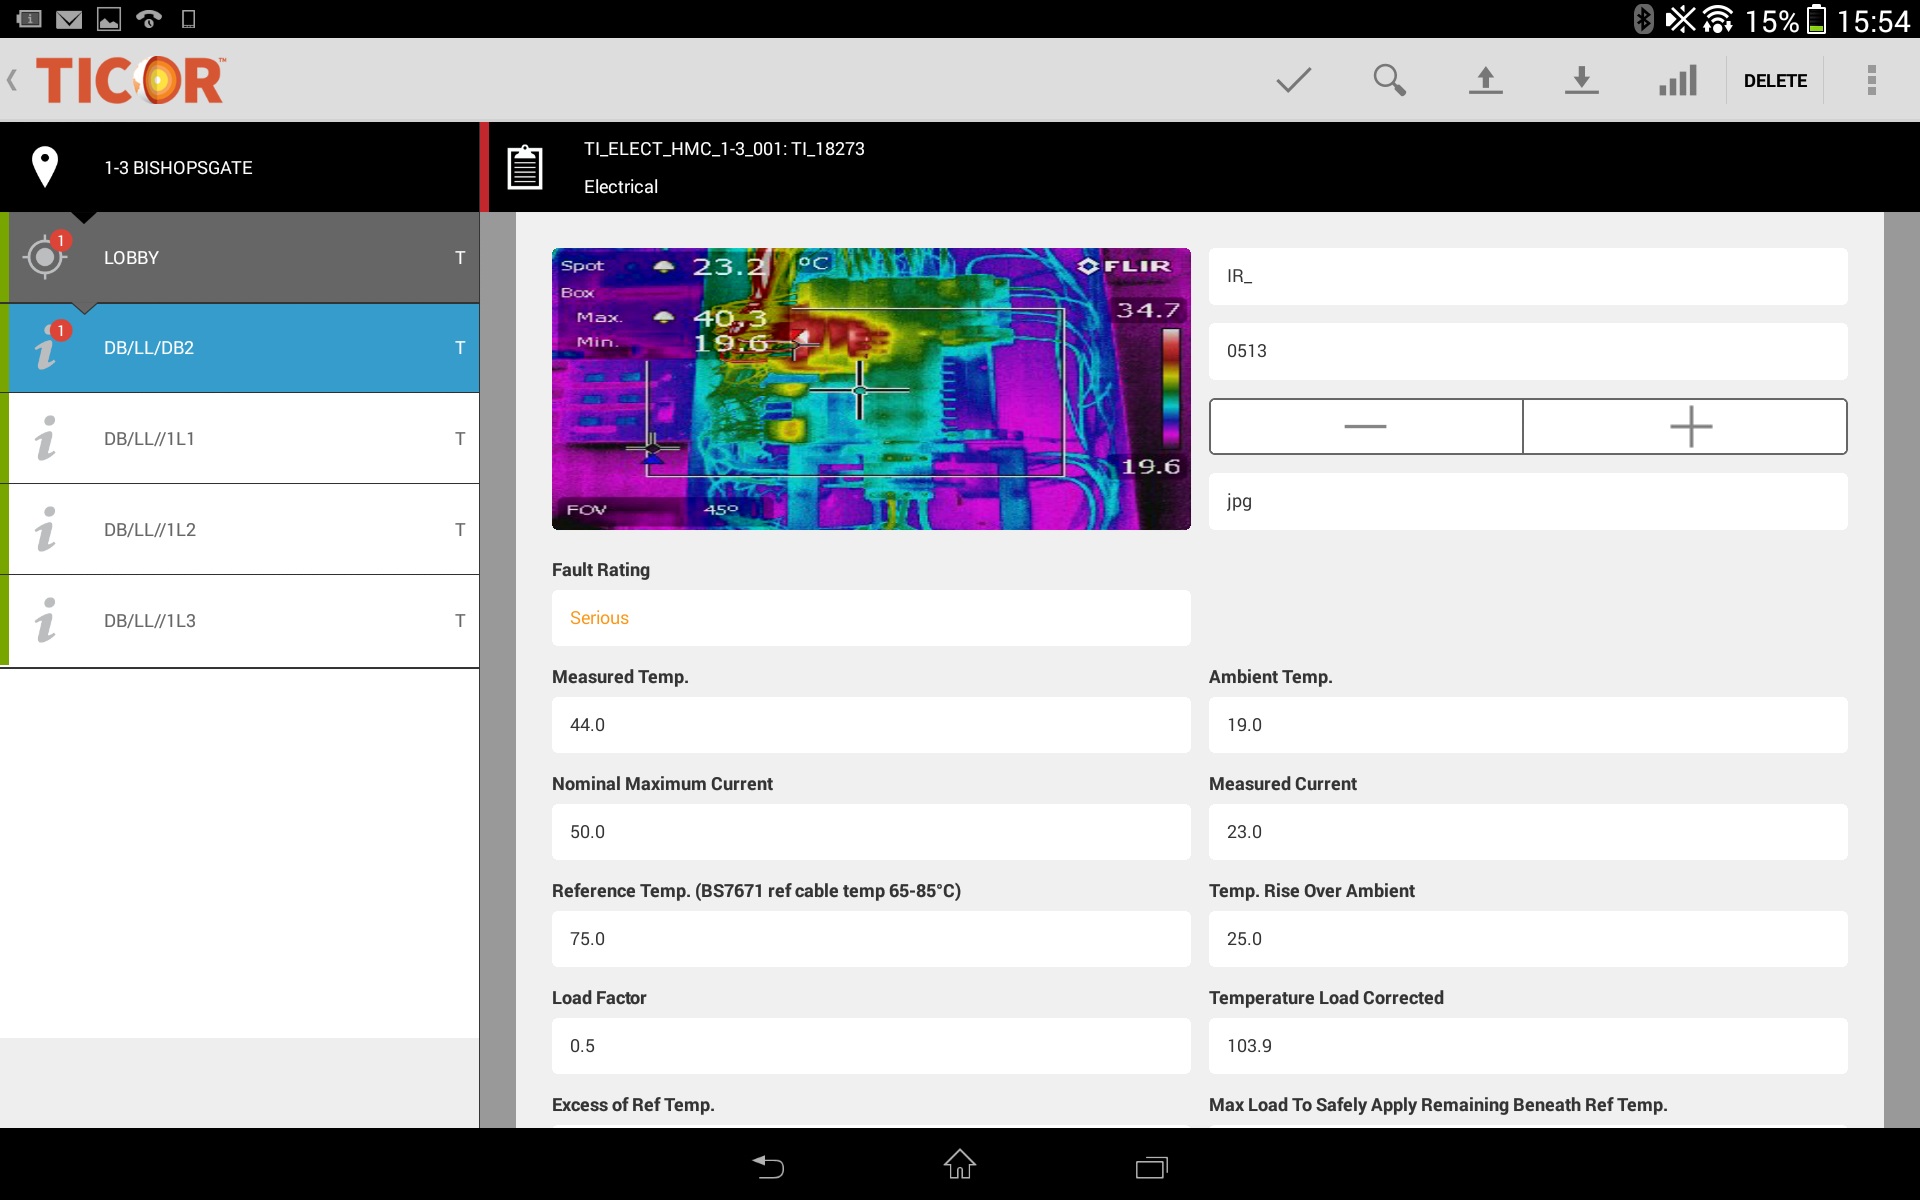 Thermal Imaging Software - Ticor Pertaining To Thermal Imaging Report Template